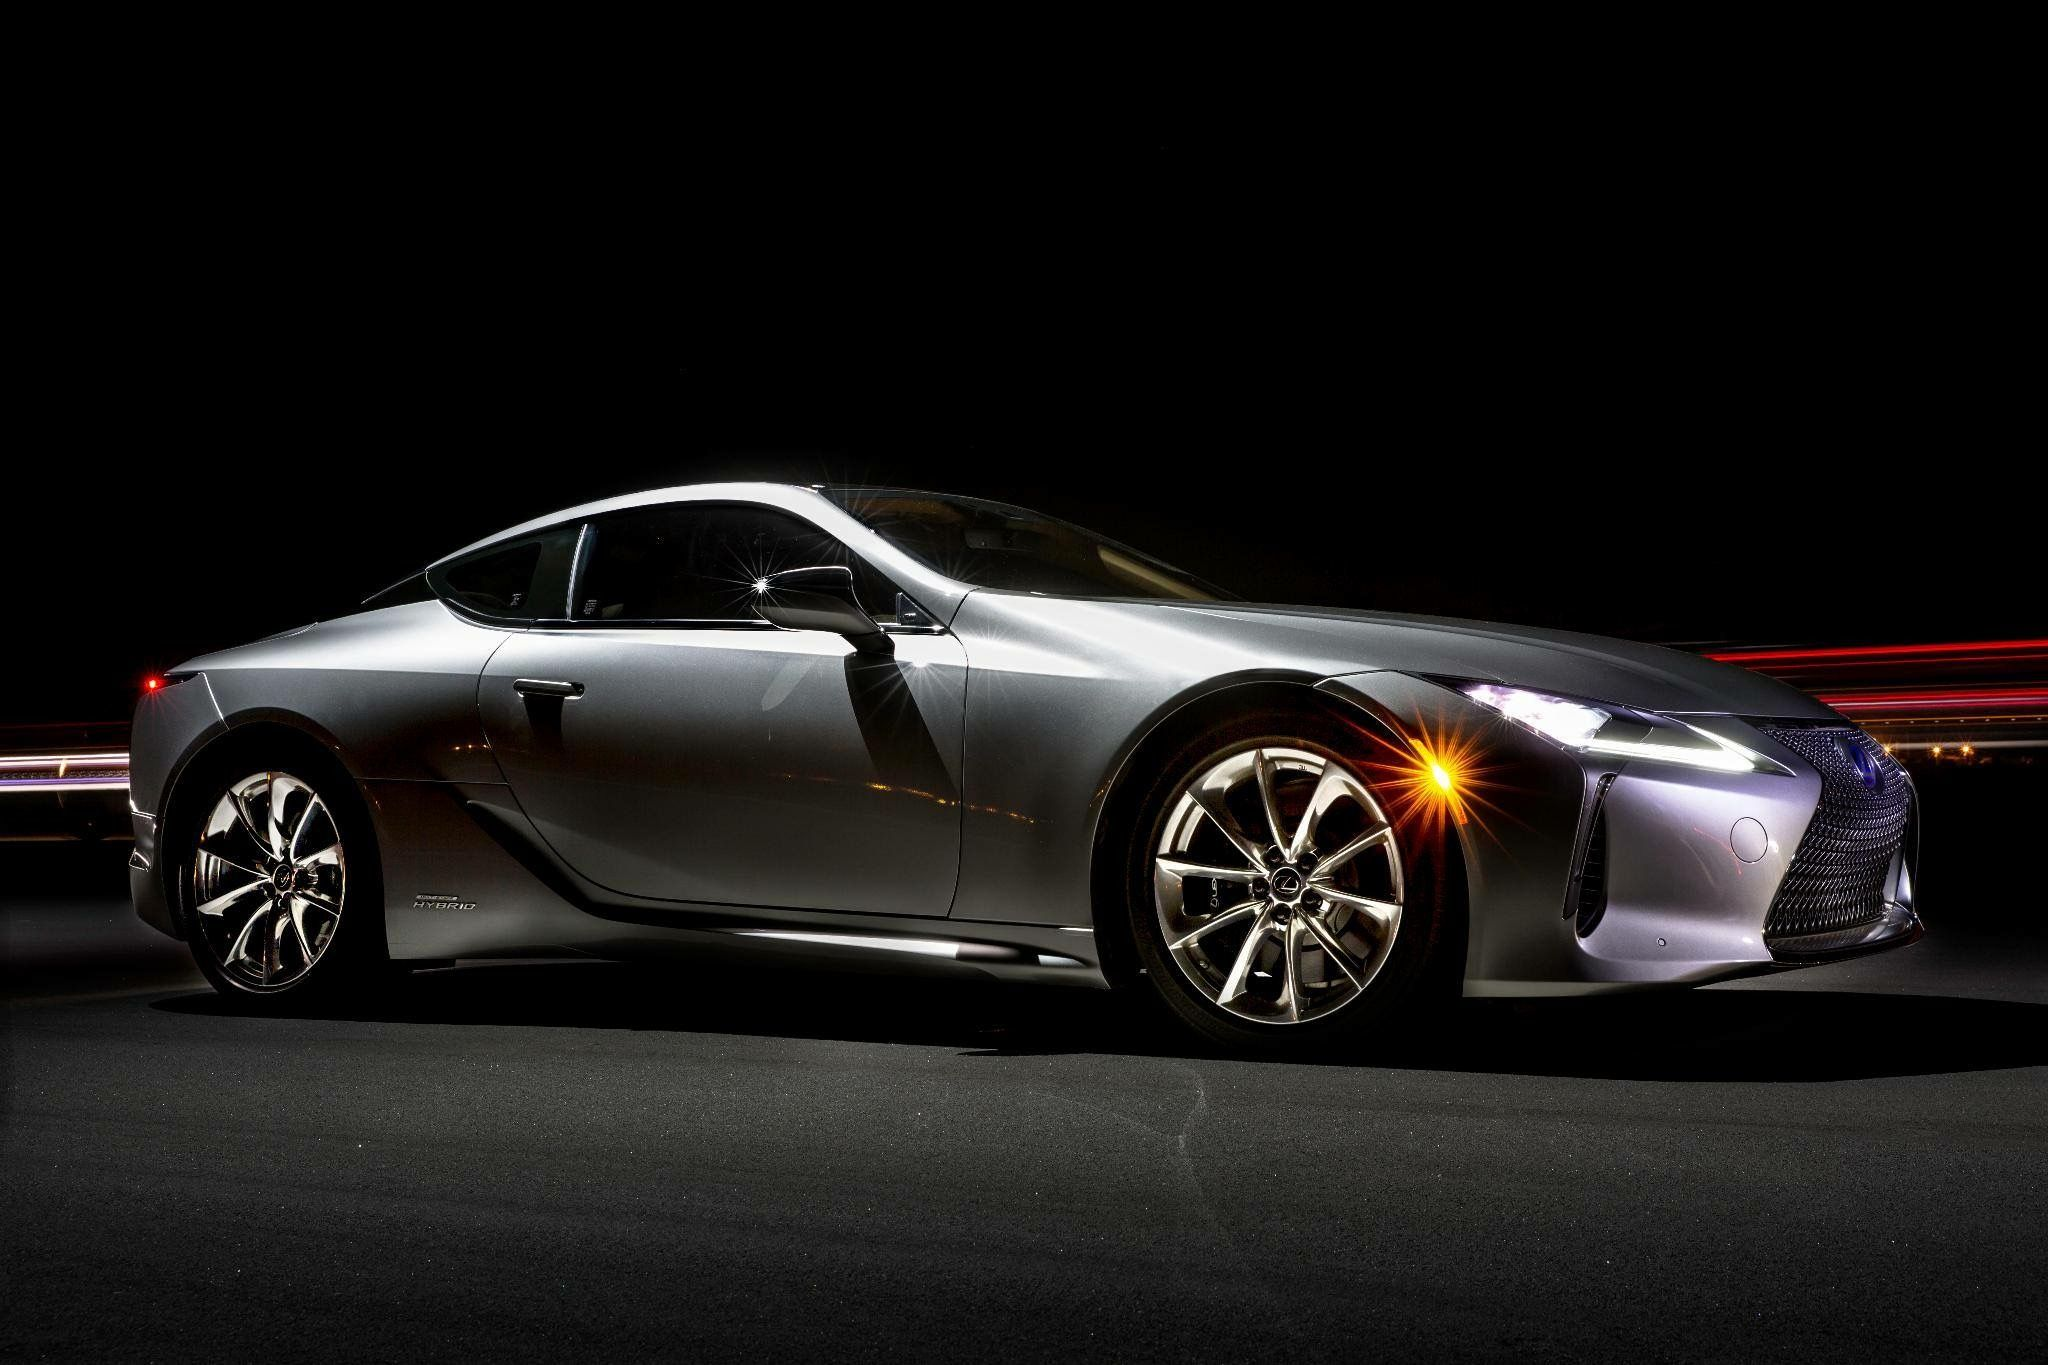 The Lexus LC 500H hybrids have never looked this good Lexus